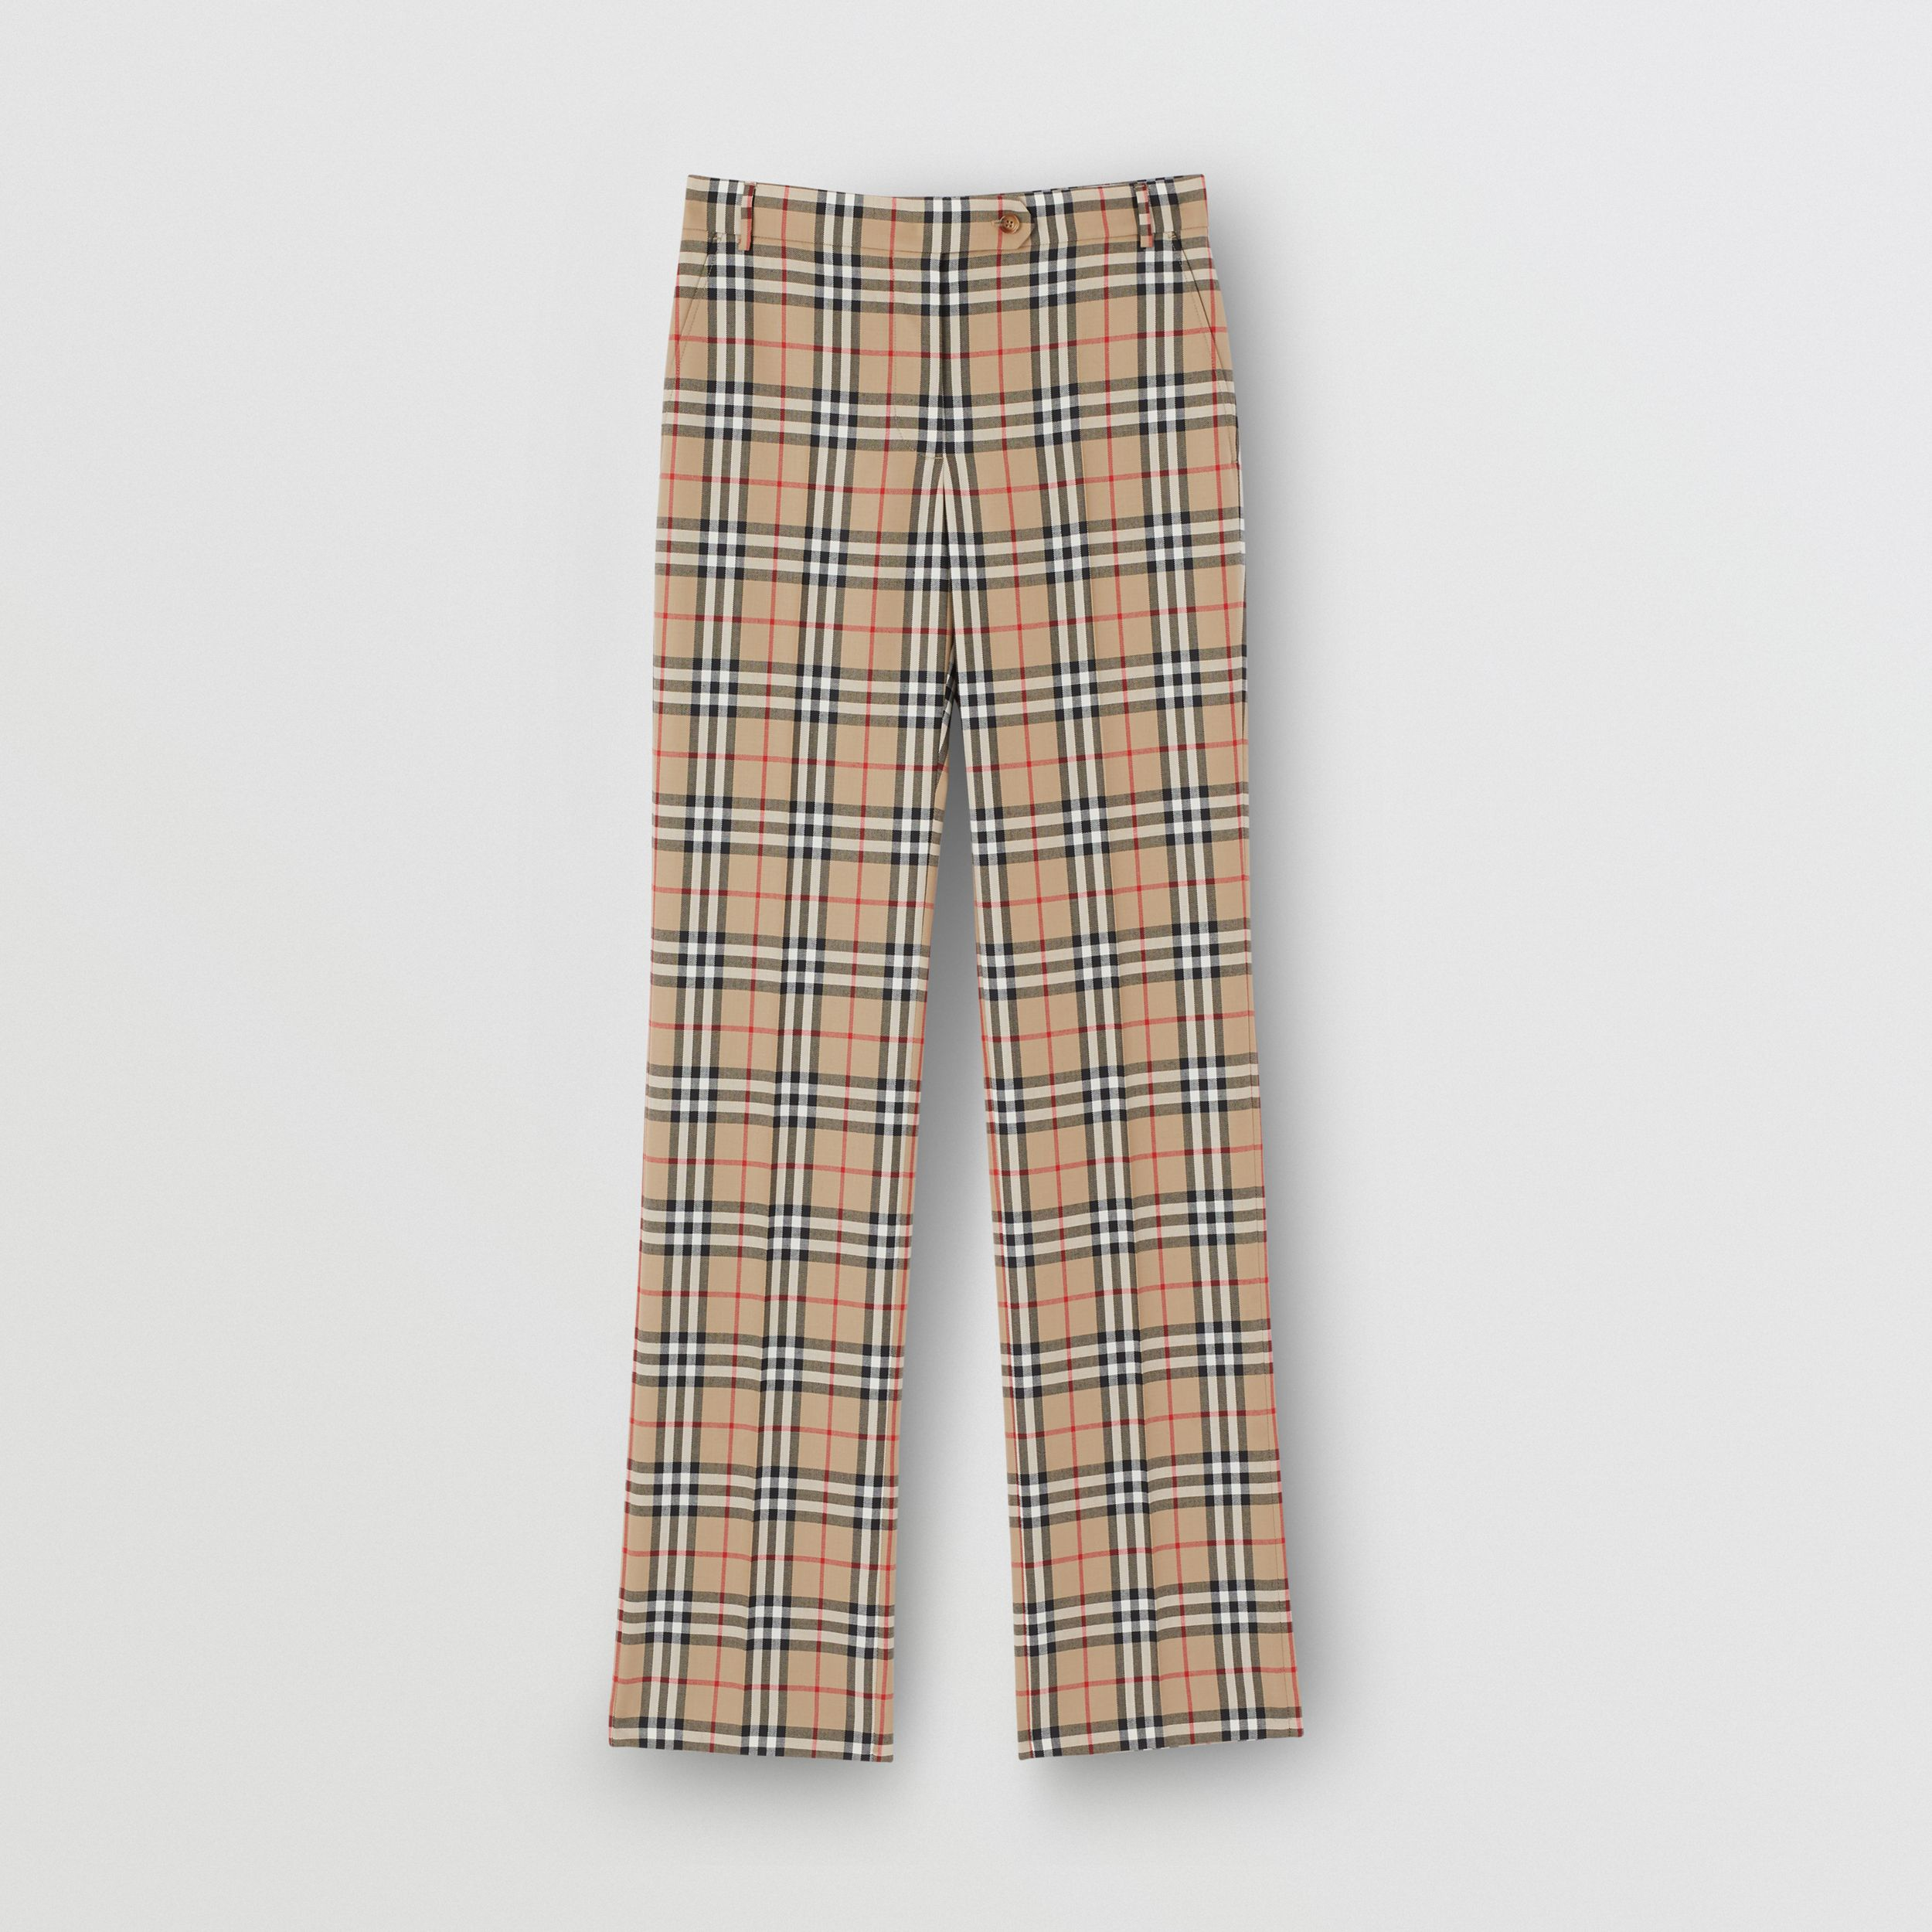 Vintage Check Wool Tailored Trousers in Archive Beige - Women | Burberry - 4